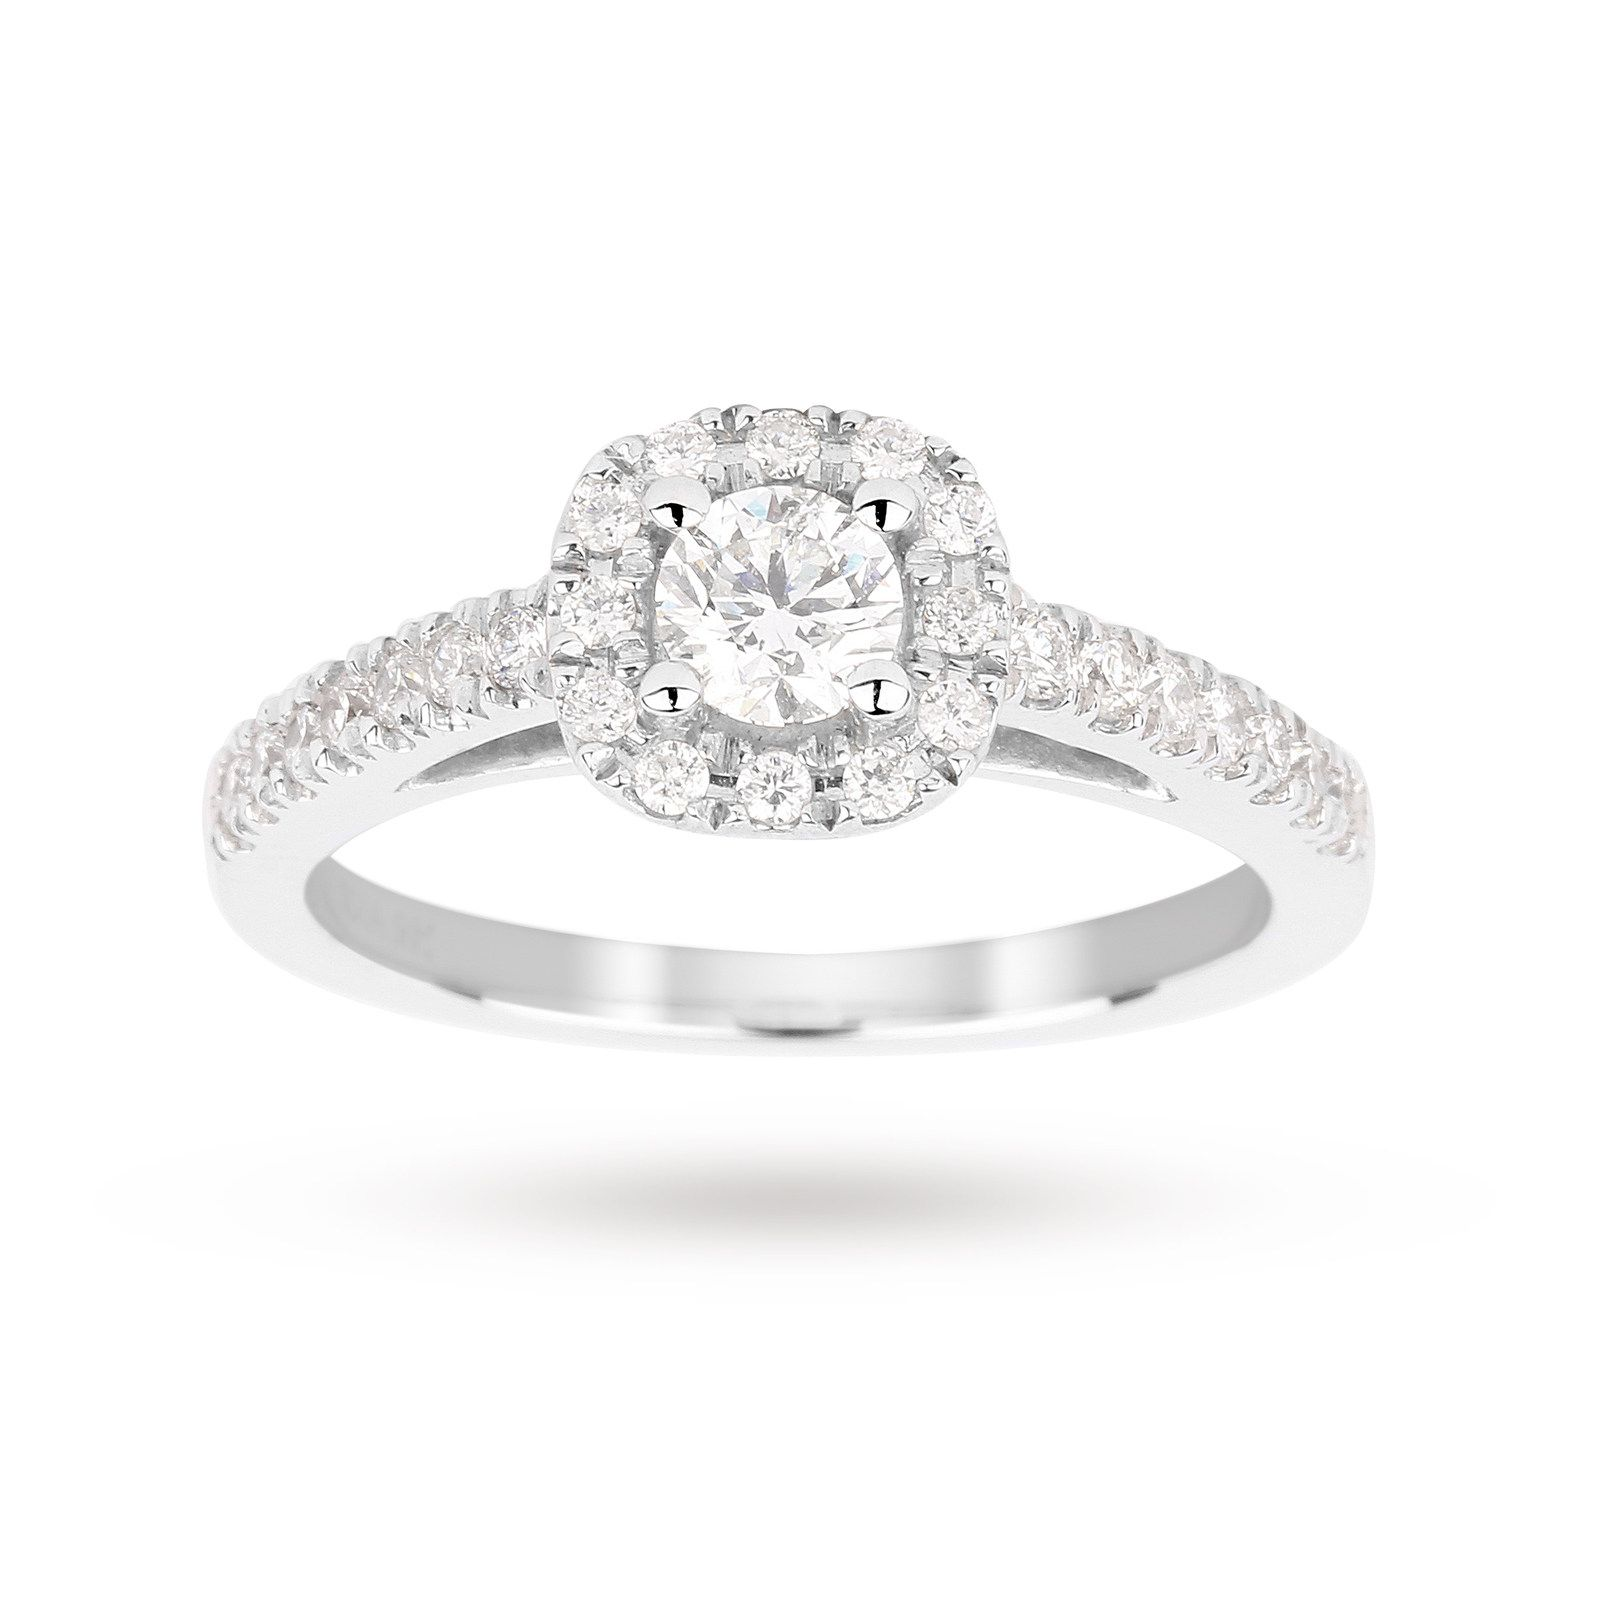 b30812ae54b Brilliant cut 0.65 total carat weight diamond halo ring with diamond ...